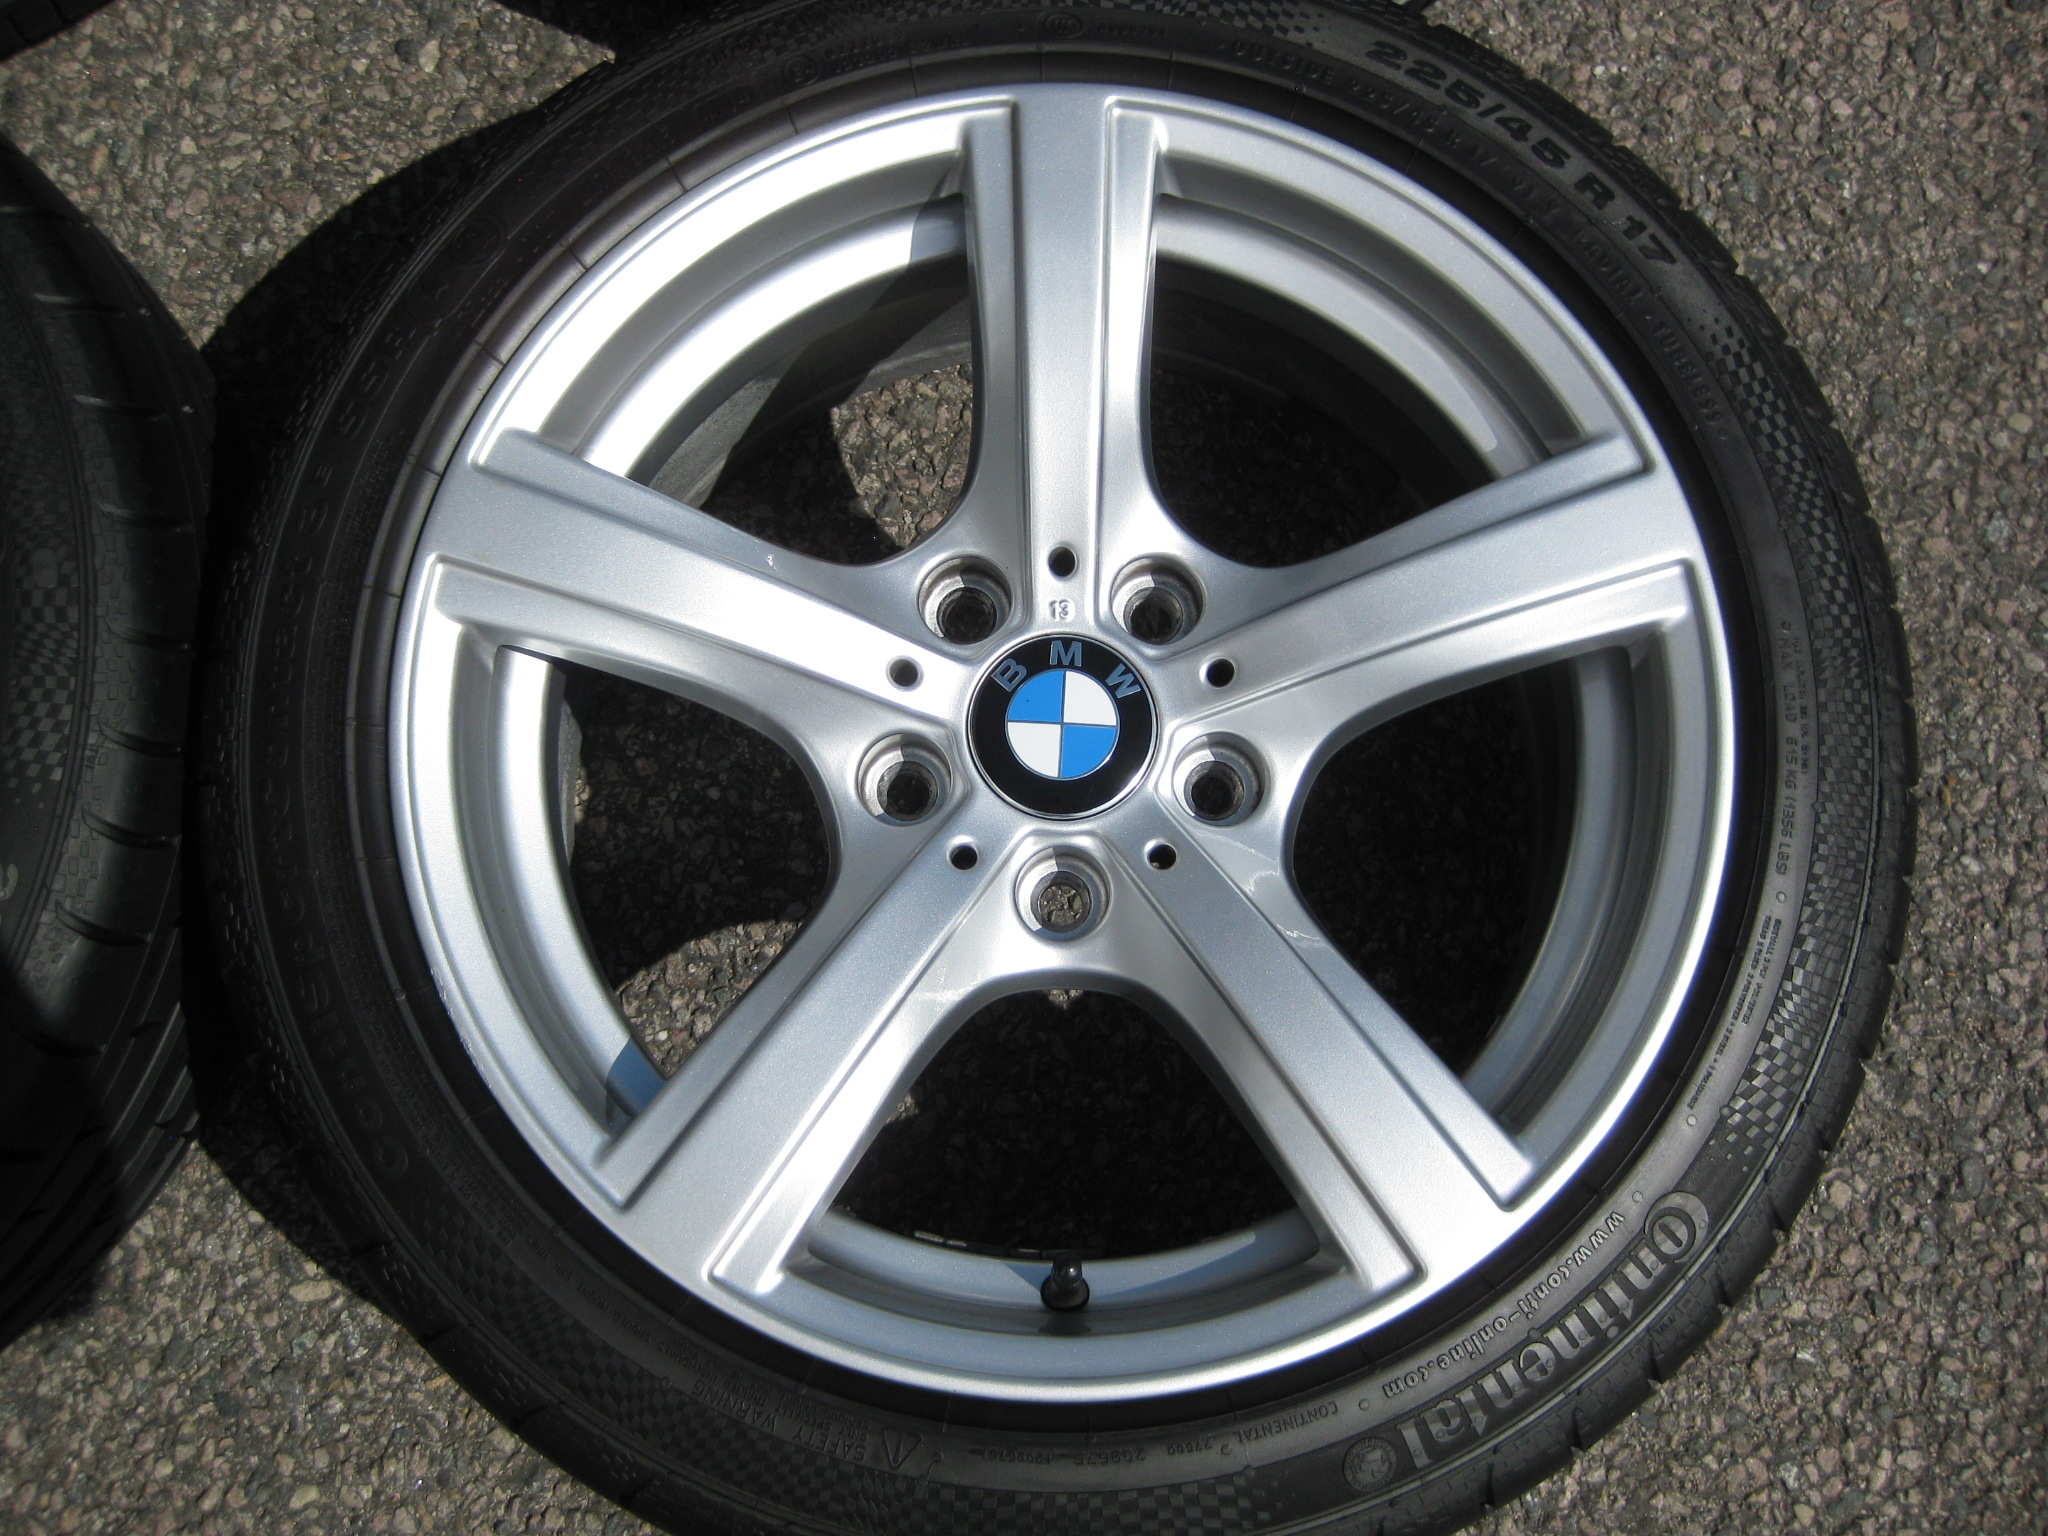 "USED 17"" GENUINE BMW STYLE 290 E89 Z4 5 SPOKE ALLOY WHEELS, VERY GOOD CONDITION INC VG RUNFLAT TYRES"